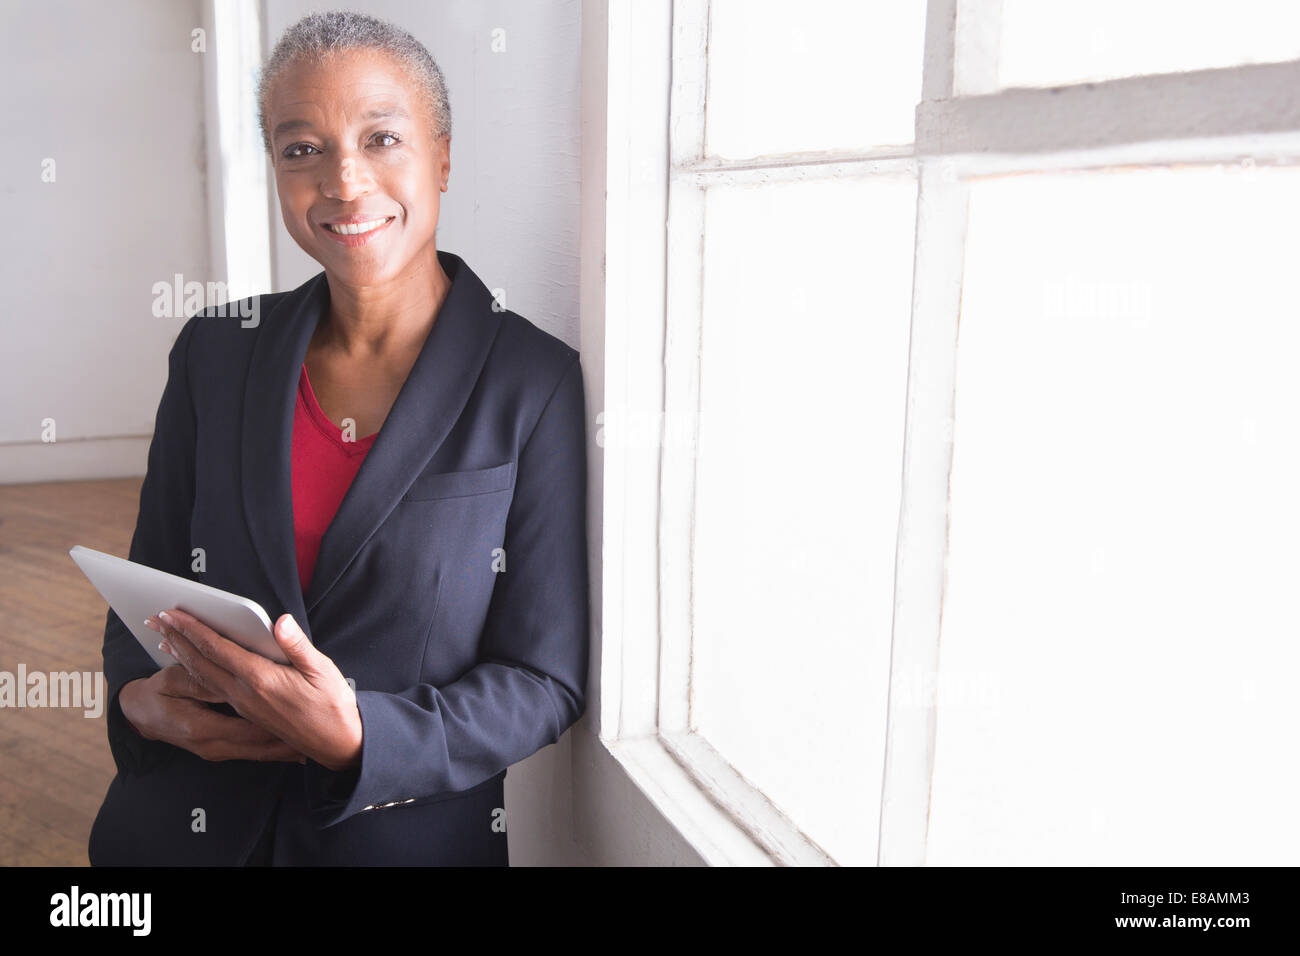 Mature woman holding digital tablet, portrait - Stock Image